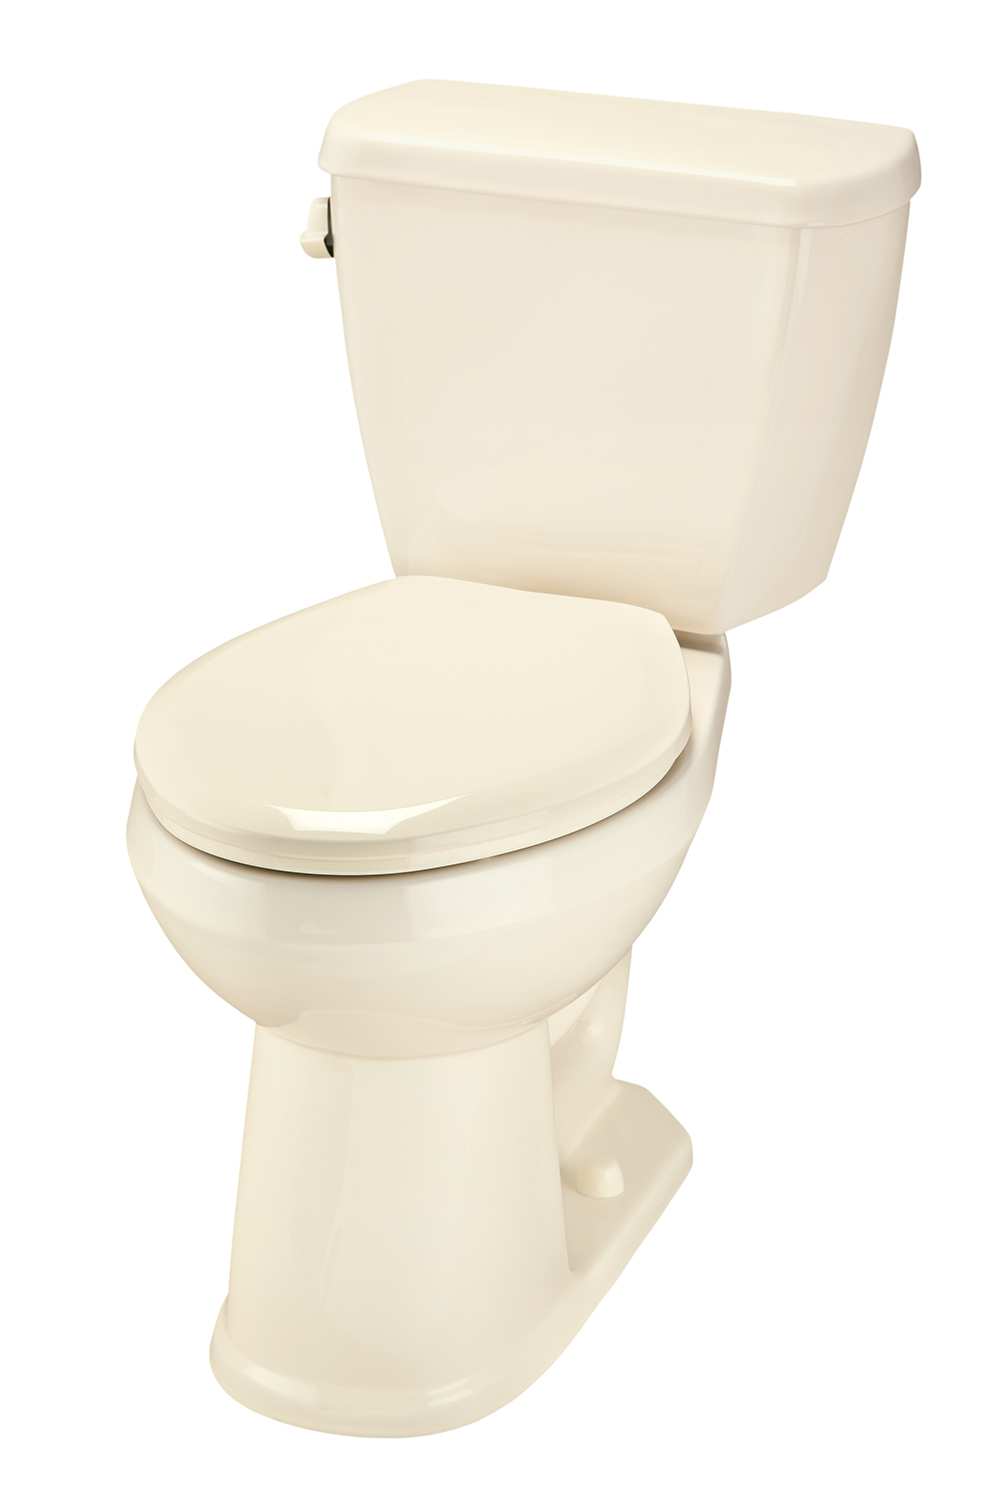 Gerber Toilet Flush Handle